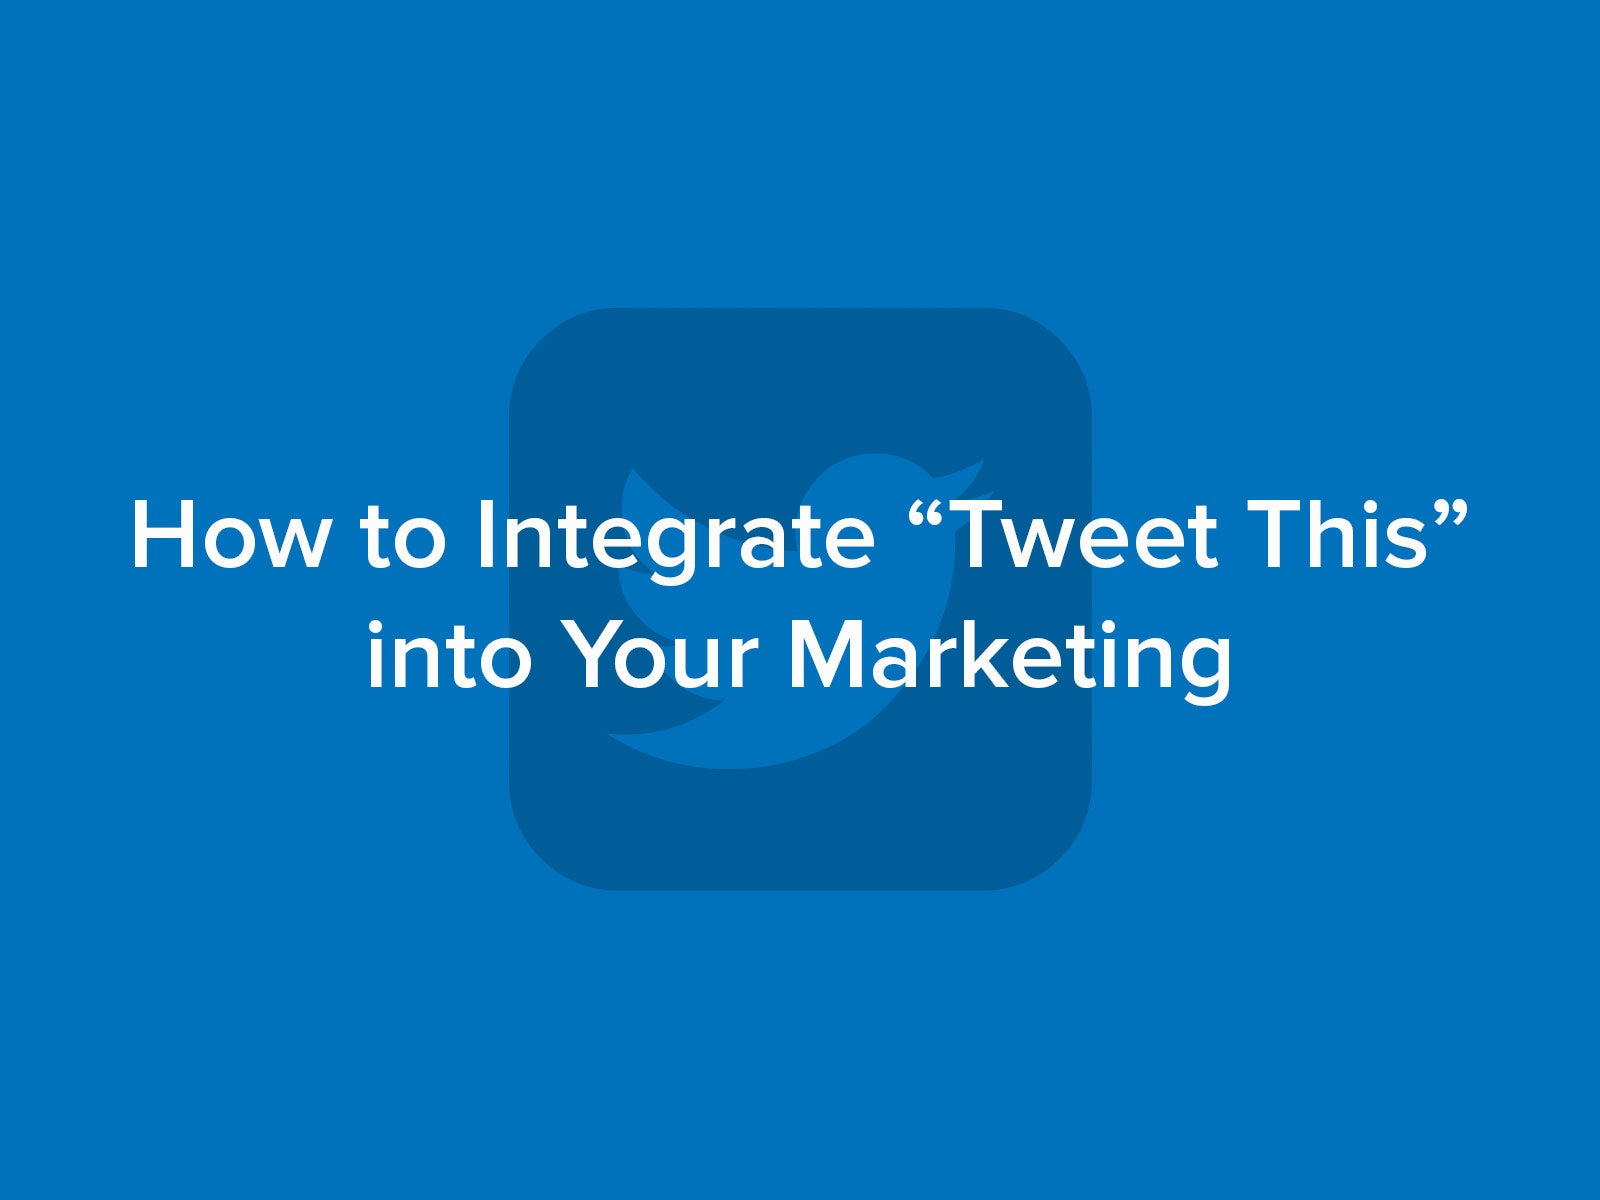 How to integrate the Tweet This feature on your website